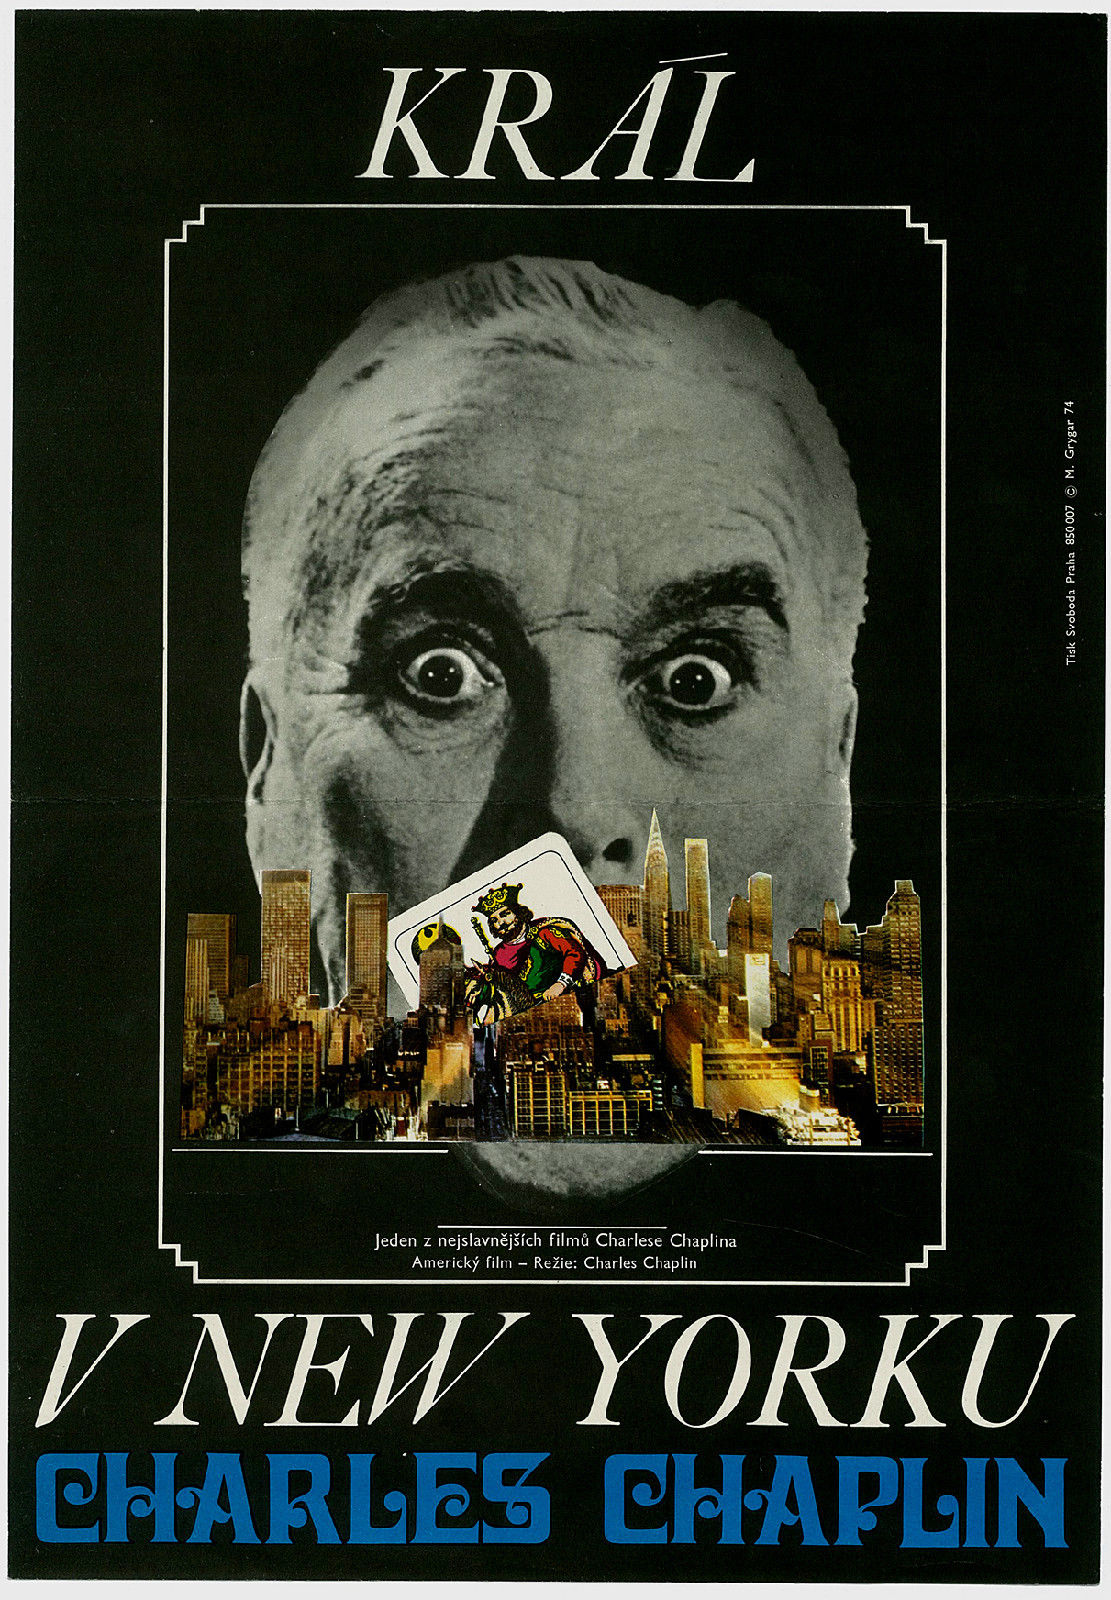 Rare Czech movie poster for King in New York Charlie Chaplin